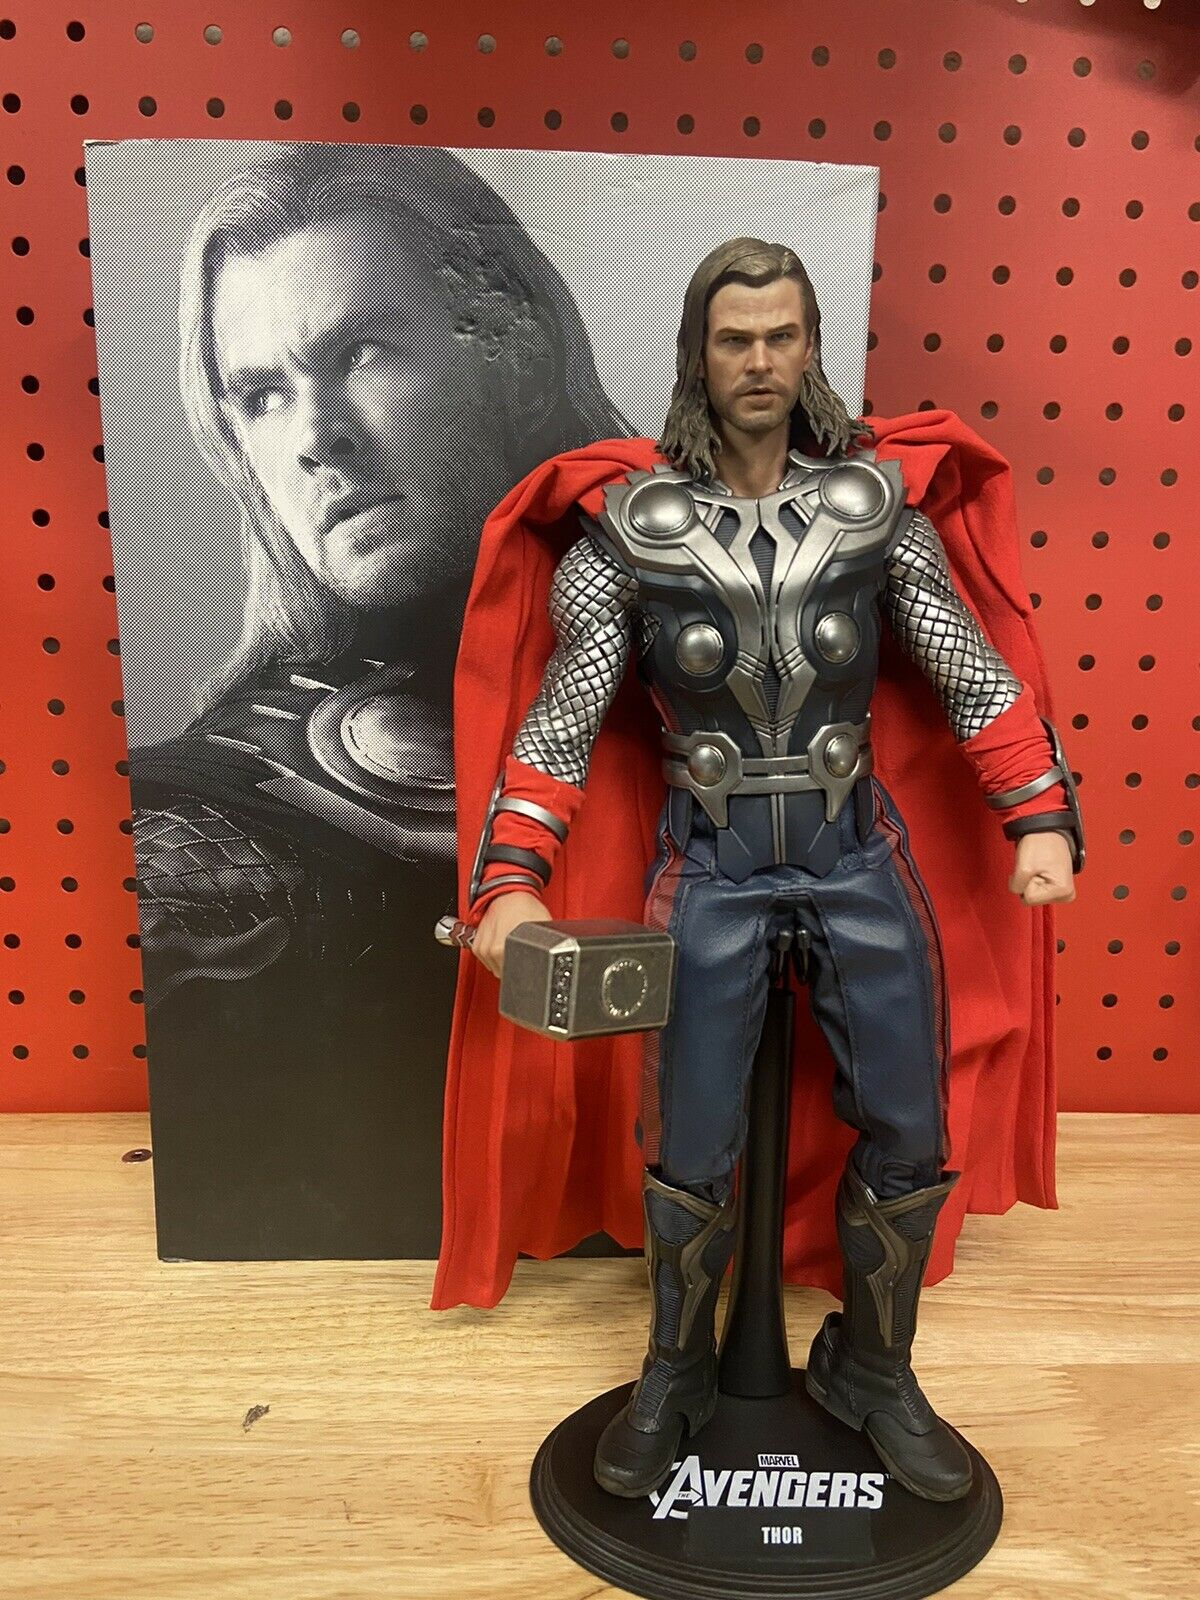 Hot Toys Avengers Thor MMS175 1:6 Scale Figure sideshow preowned used condition on eBay thumbnail